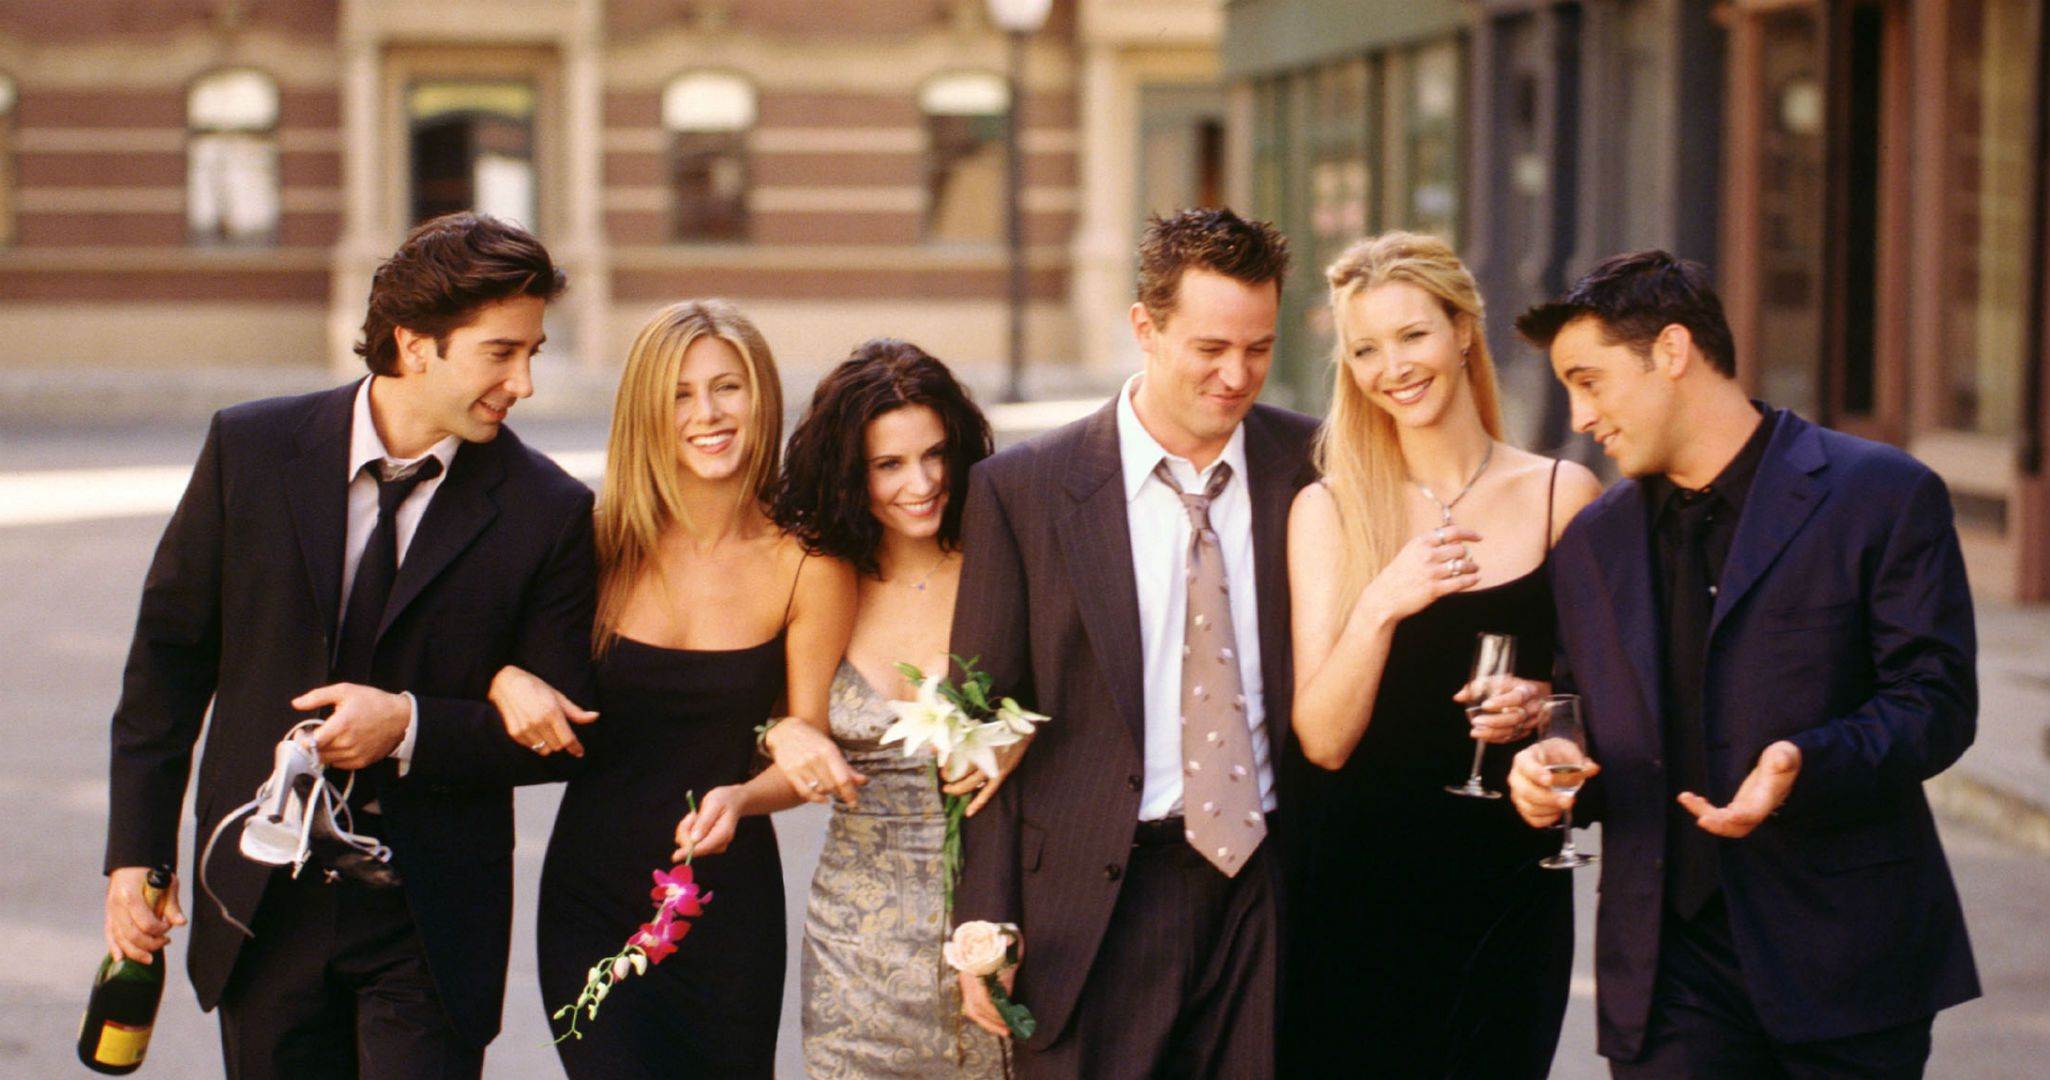 """Friends creators explain the one relationship they """"never intended"""" to happen"""